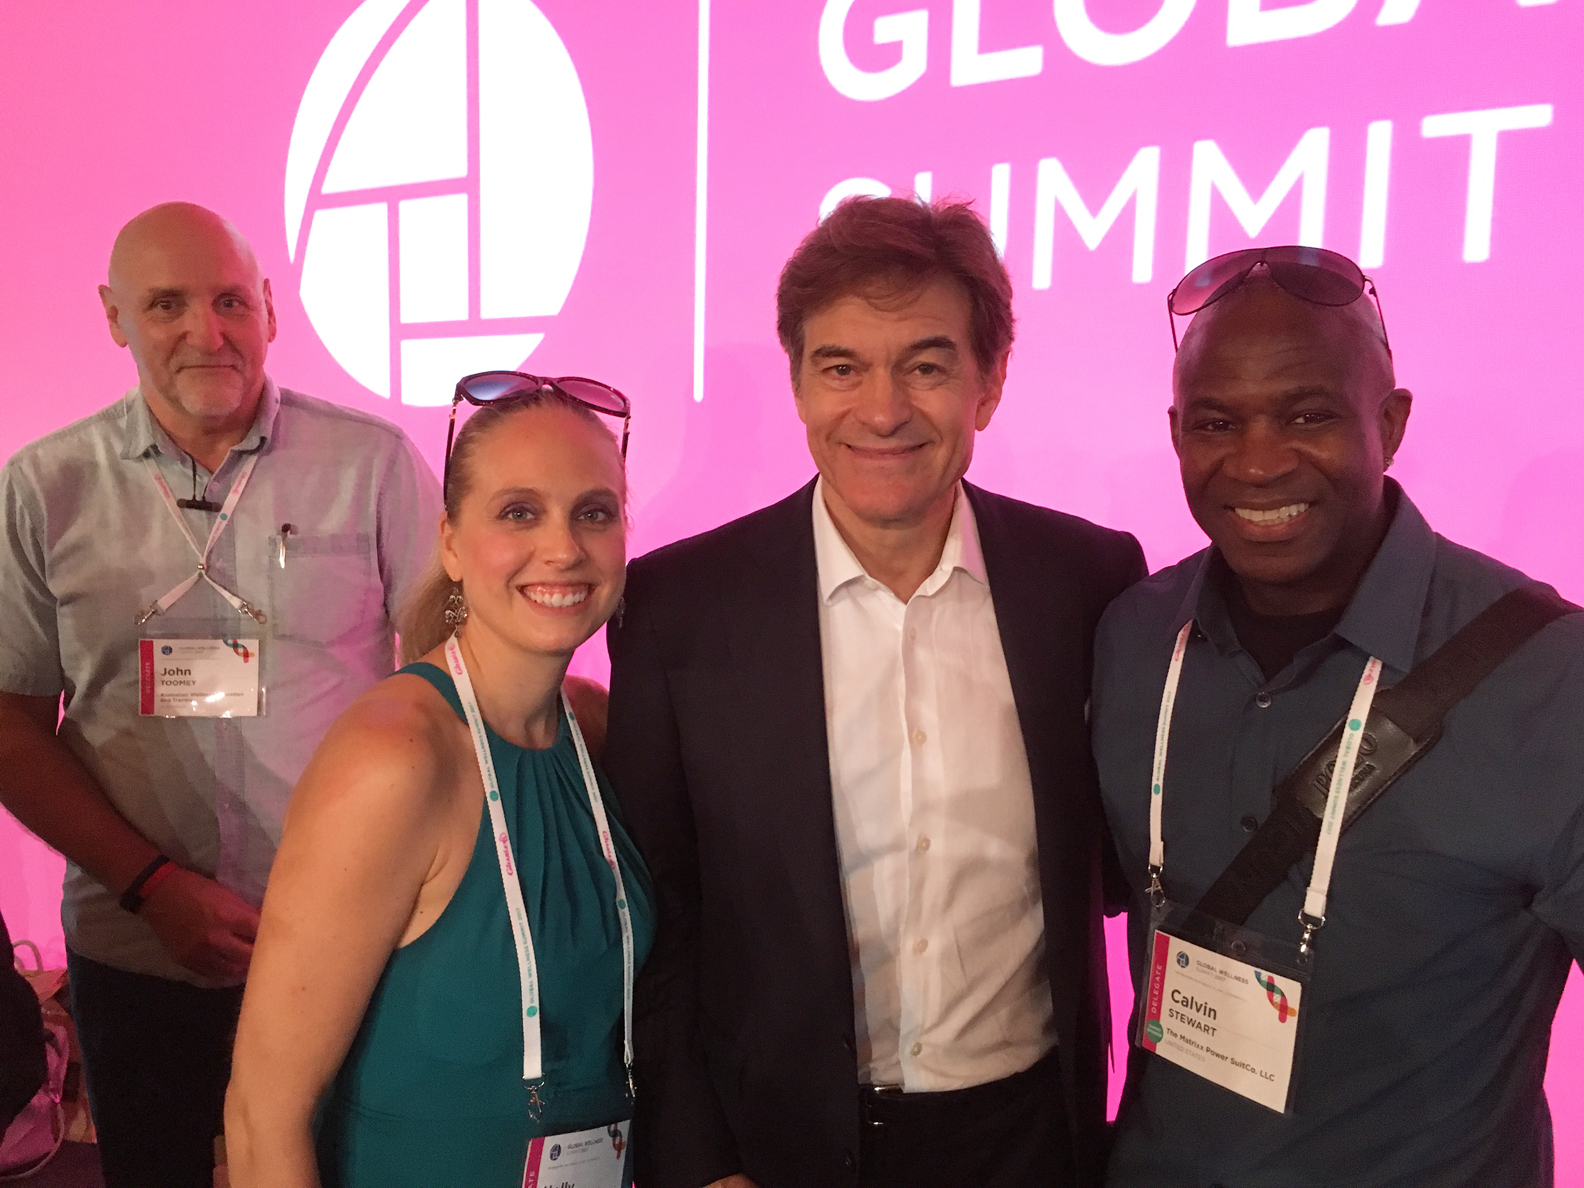 Calvin & Holly w Dr. Oz - GWS 2017.jpg